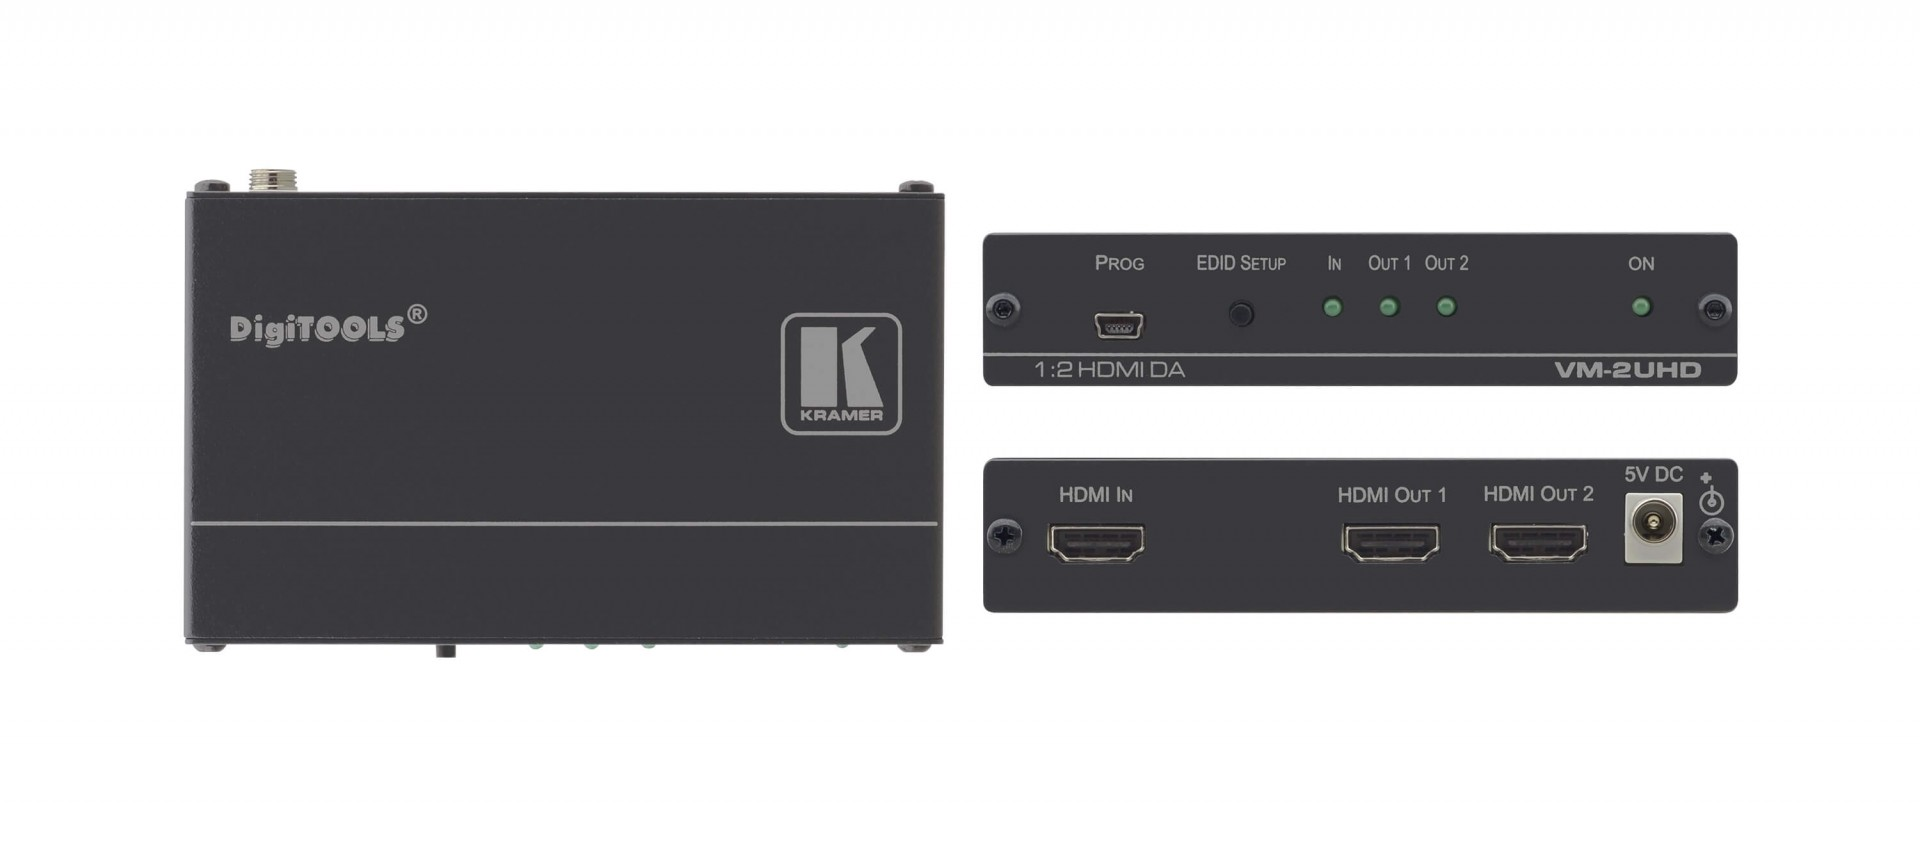 Kramer 1:2 4K60 4:2:0 HDMI distribution amplifier -VM-2UHD